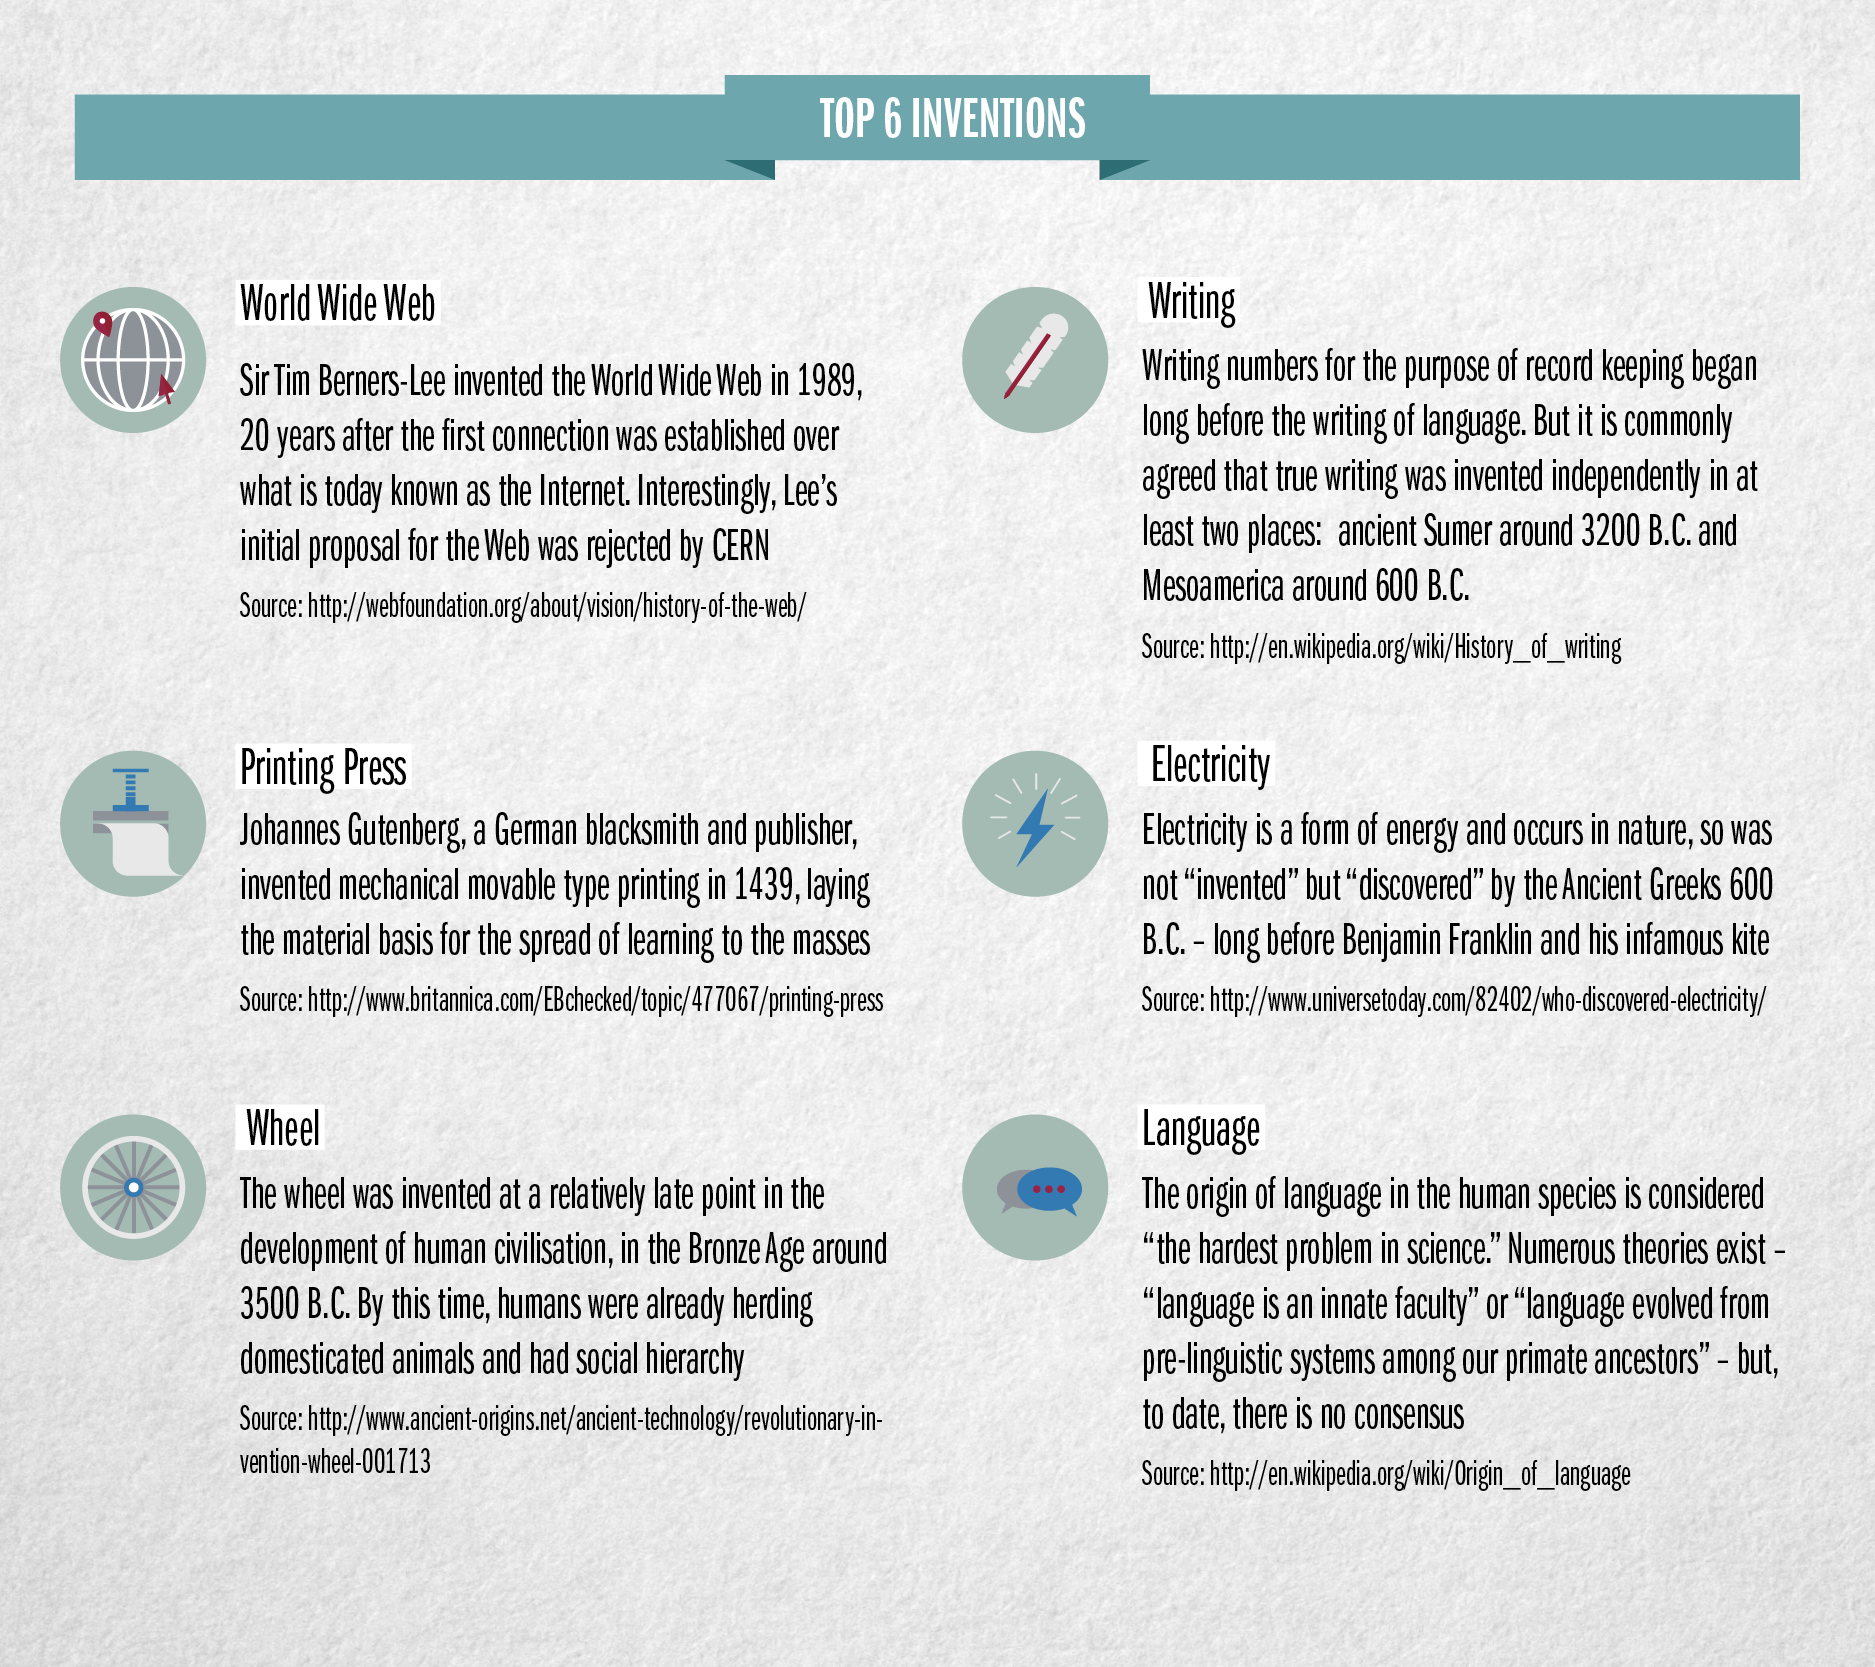 Fromhttp://raconteur.net/culture/the-greatest-inventions-of-all-time